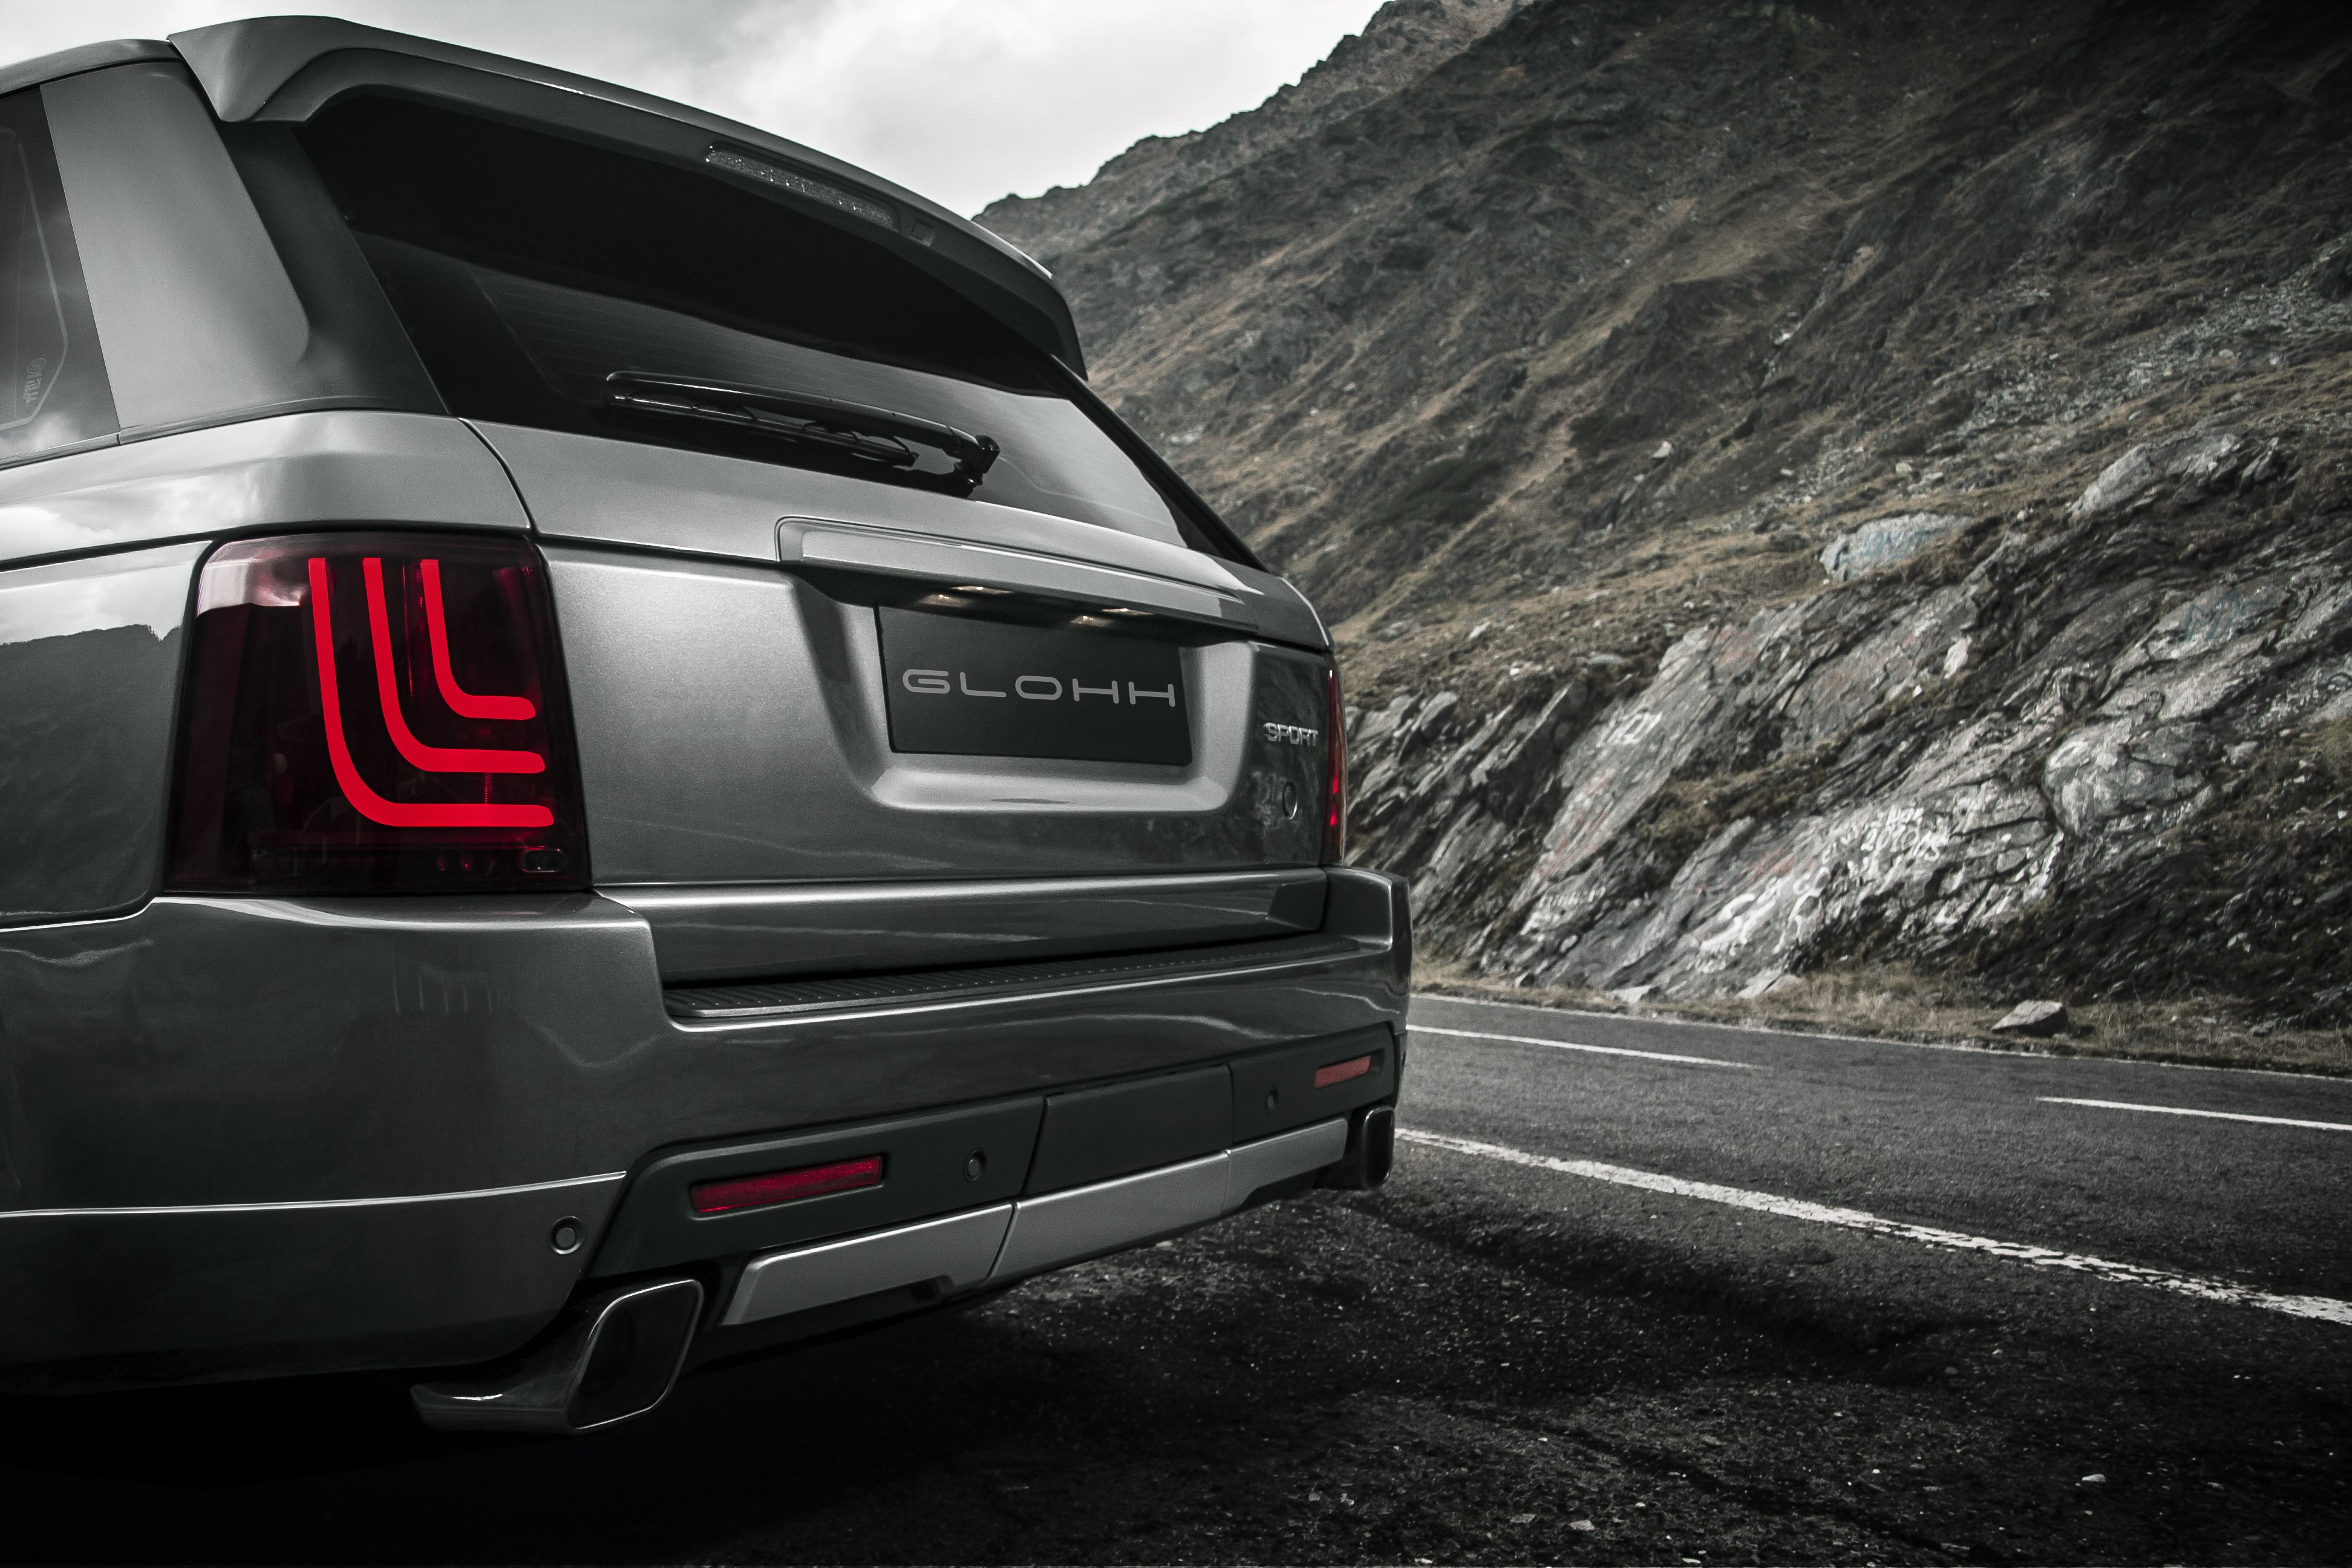 A look defined by curves. glohh rangeroversport